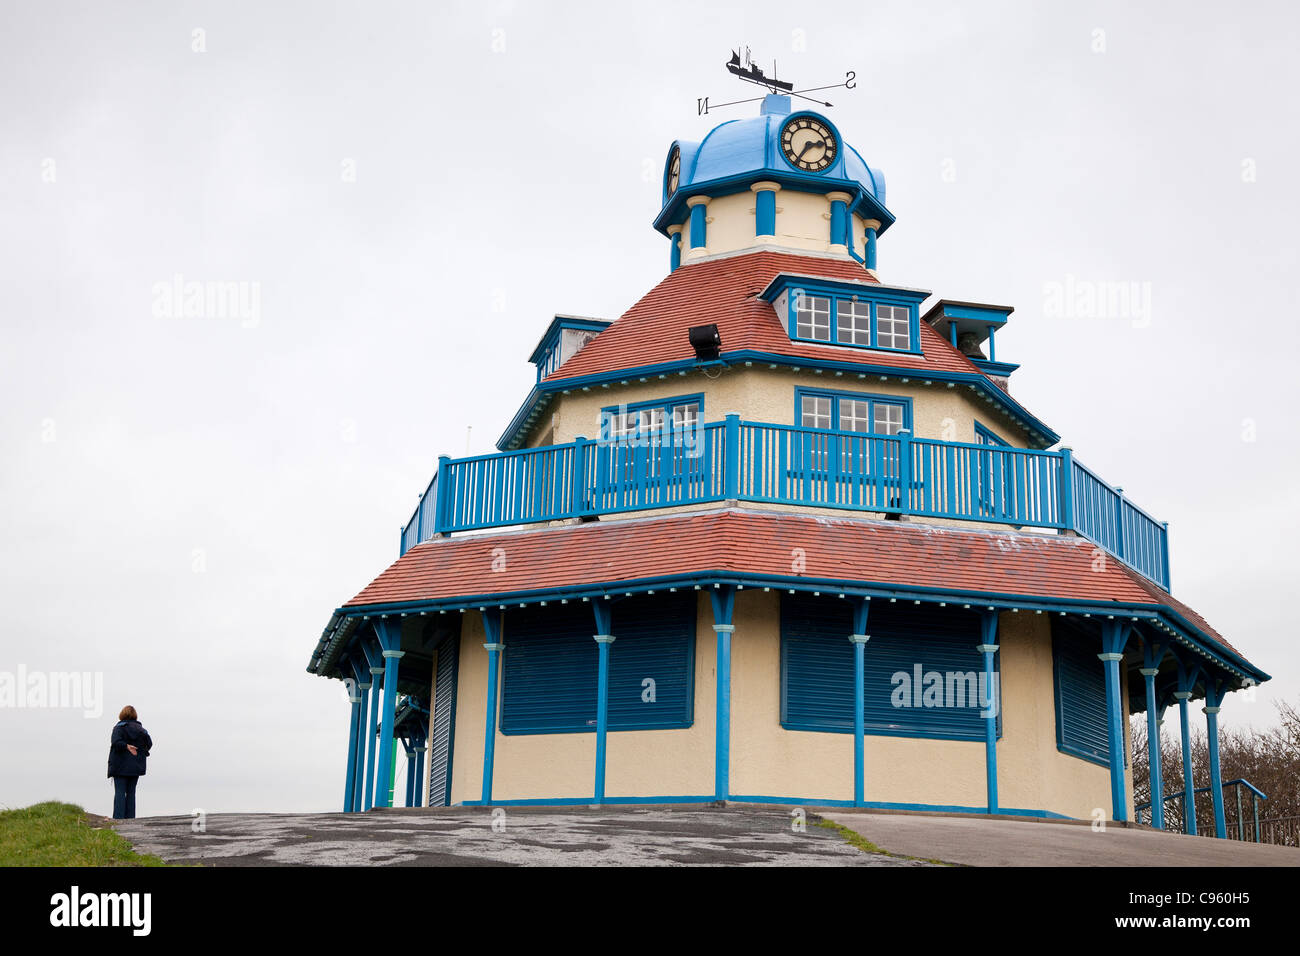 The summerhouse in Mount Park Fleetwood with a novel windvane in the form of a trawler. - Stock Image